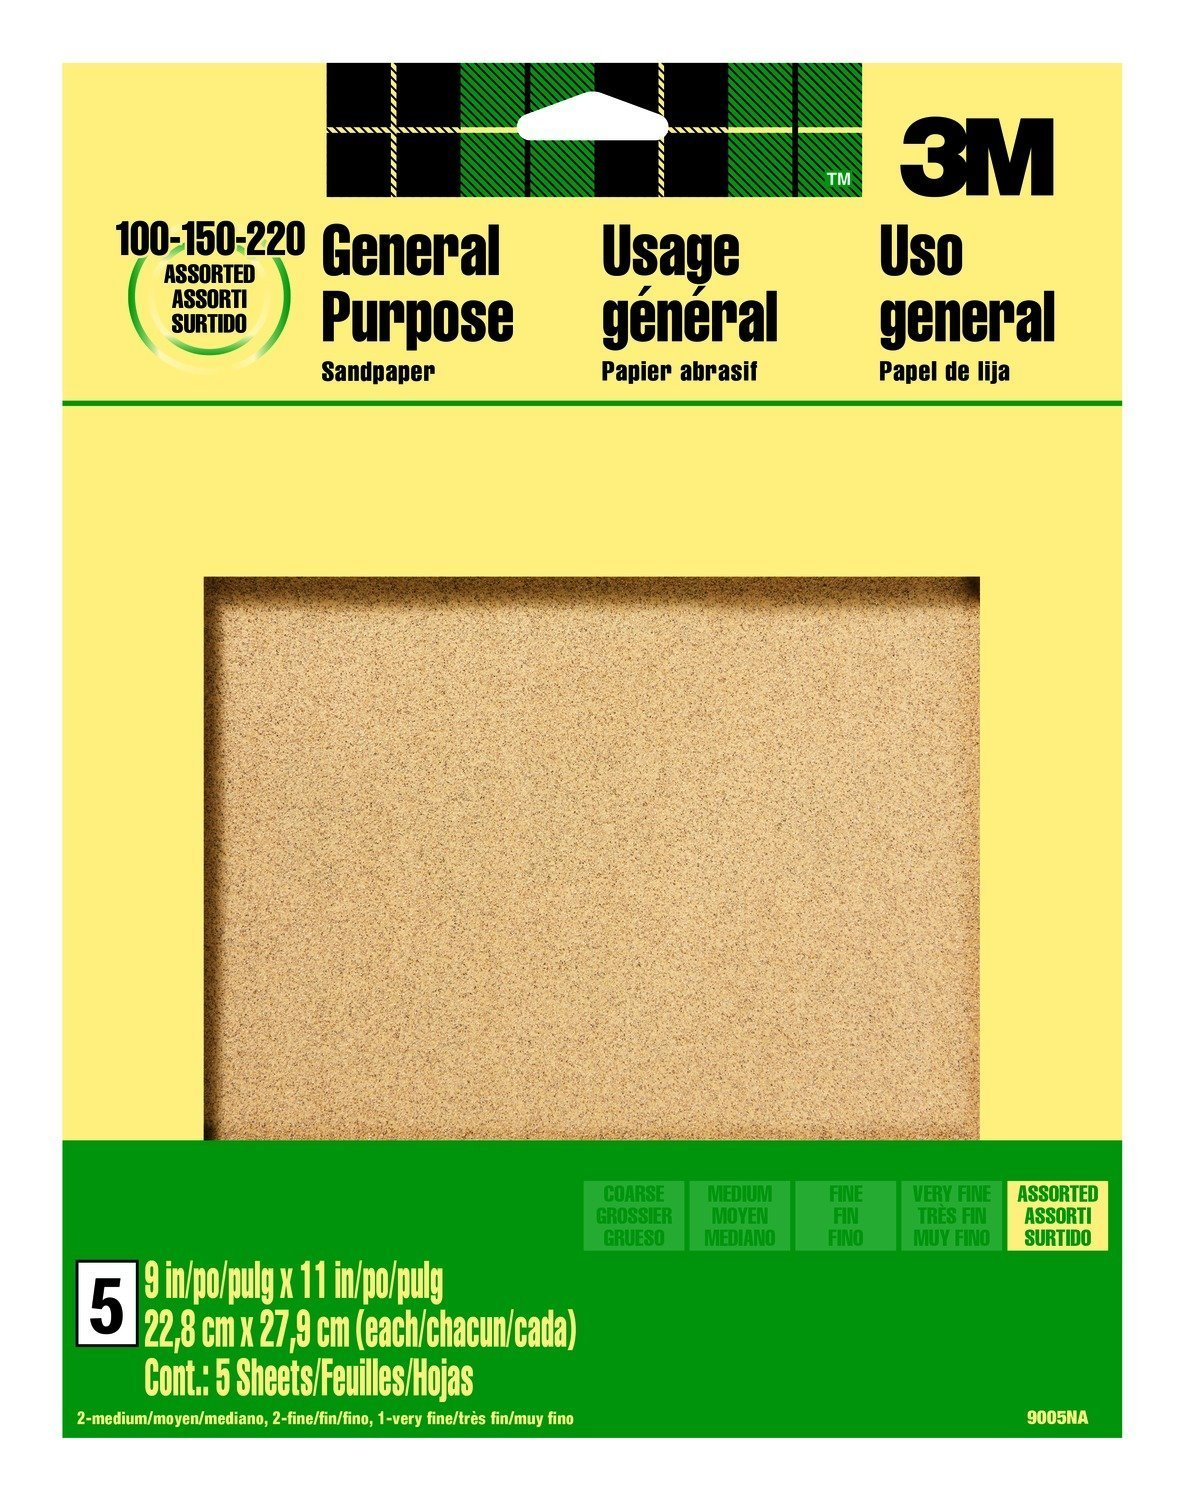 10 Pack Of 3M 9005NA 9-Inch by 11-Inch Aluminum Oxide Sandpaper, Assorted